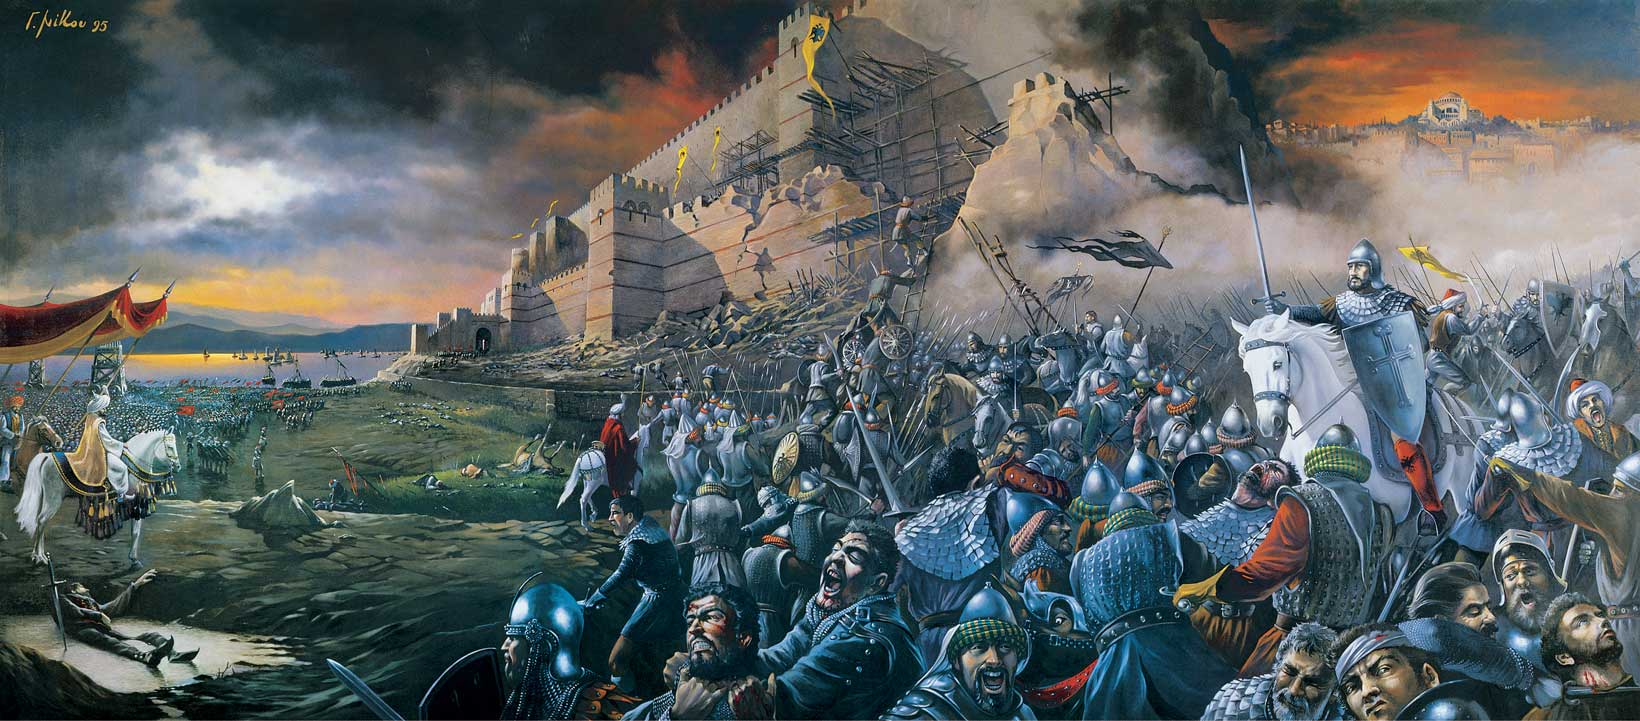 A tale of blood and slaughter: the fall of Constantinople